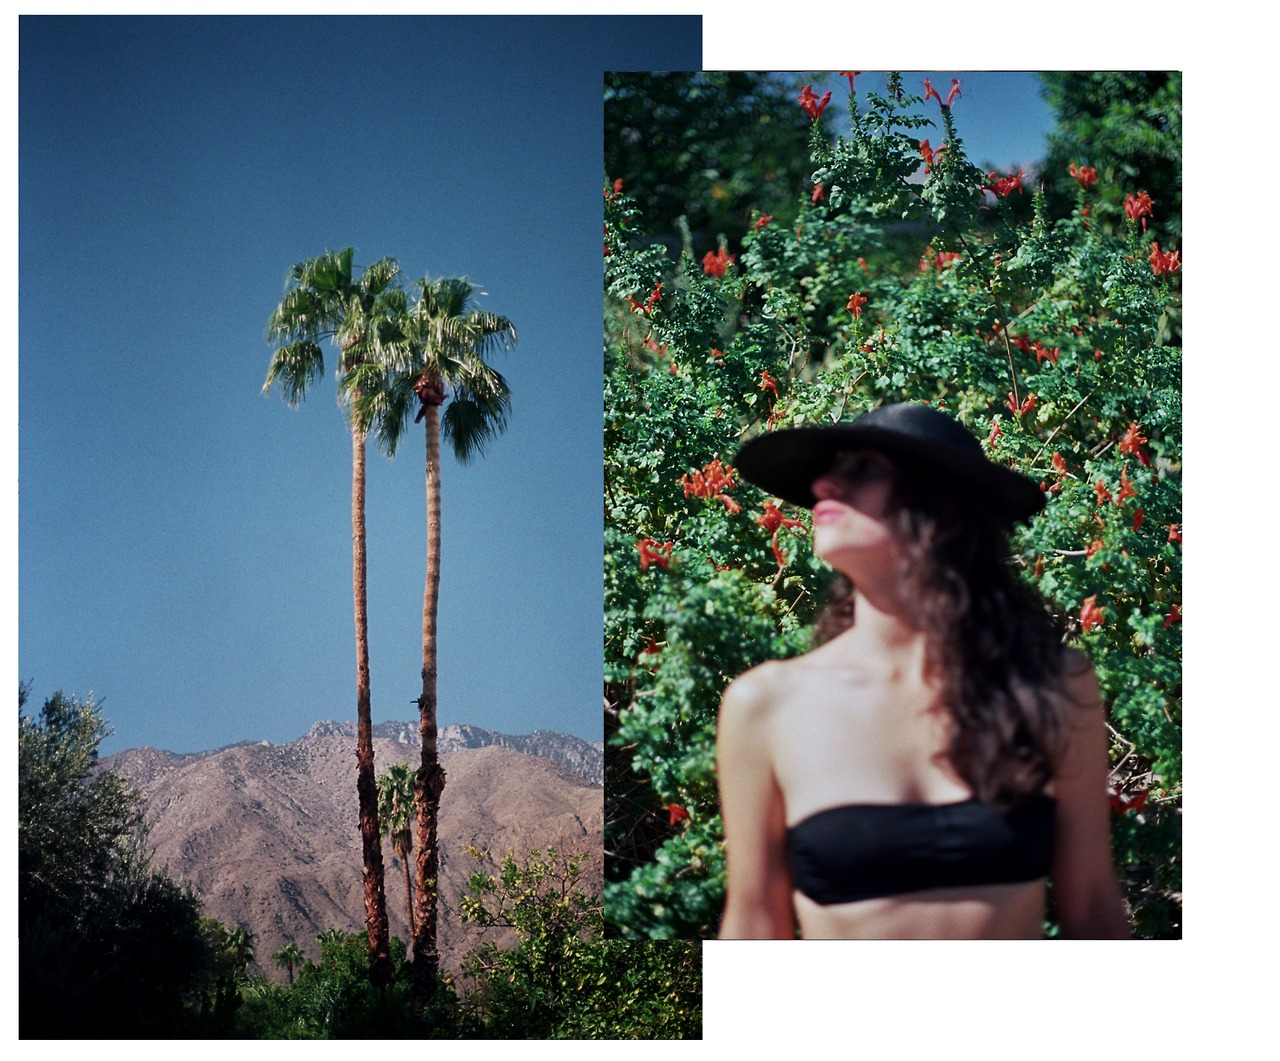 http://seeingacameravomit.tumblr.com/post/67377487478/palm-springs-visual-diary-no-4